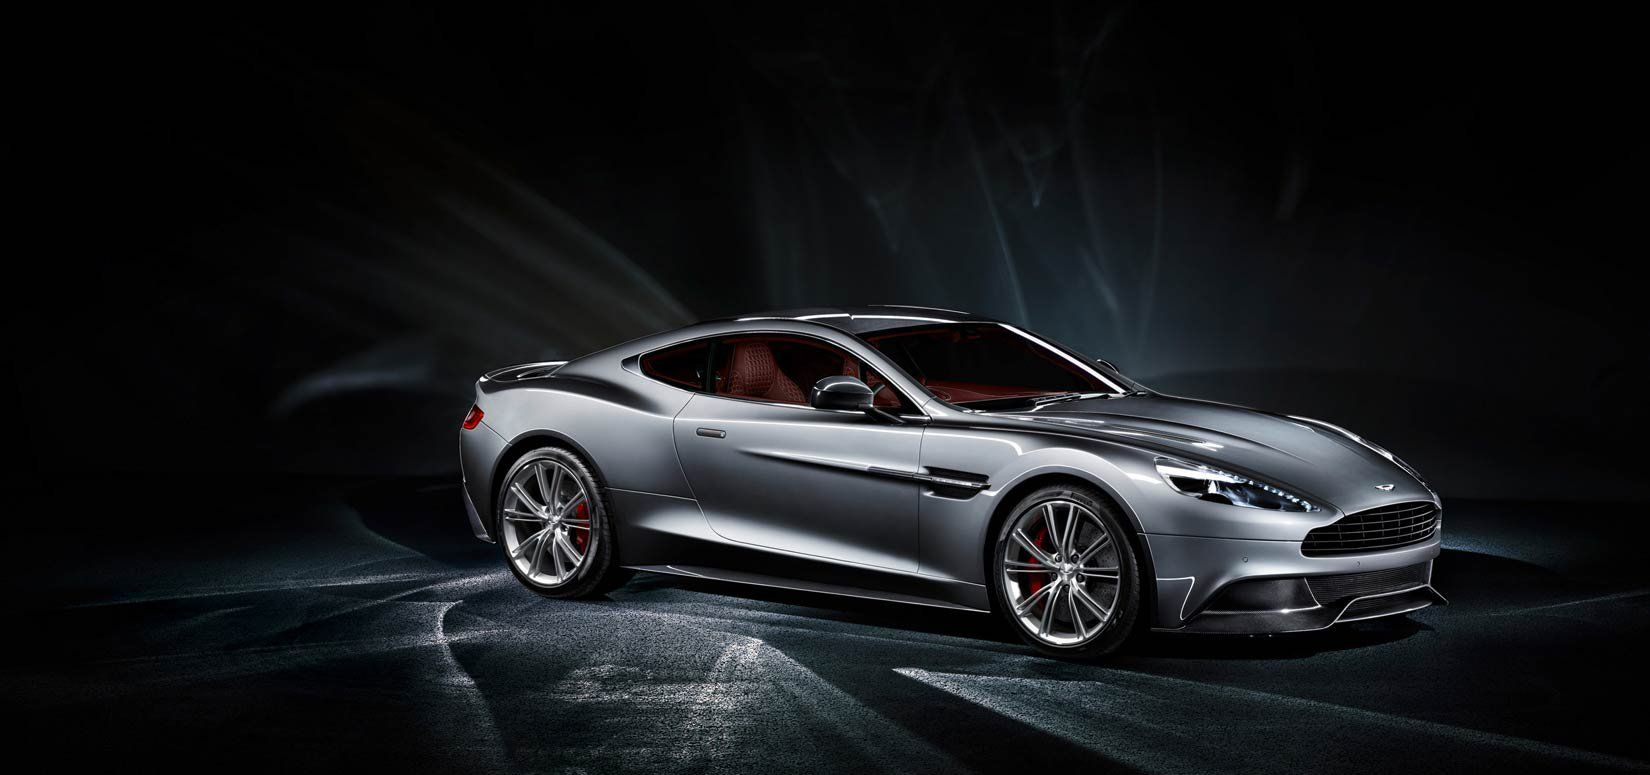 aston martin rakes in $26 million for tooling and design drawings